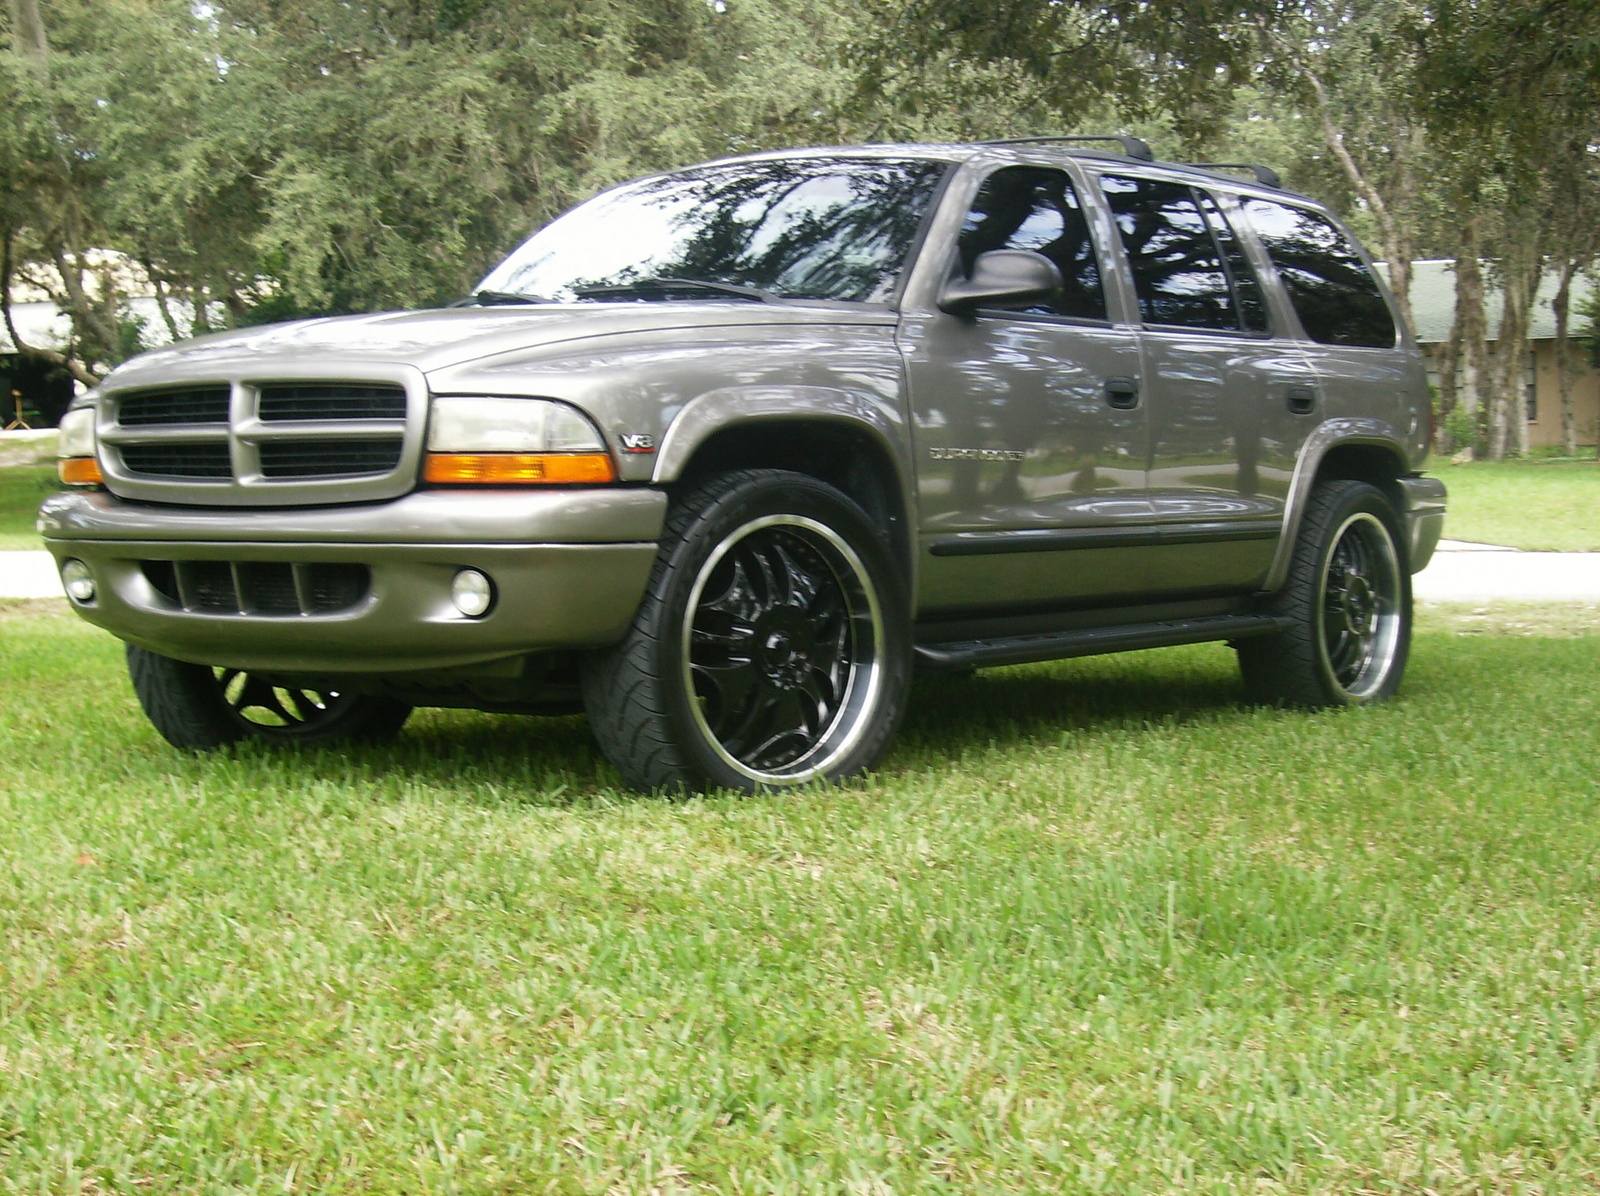 1999 dodge durango - overview - cargurus